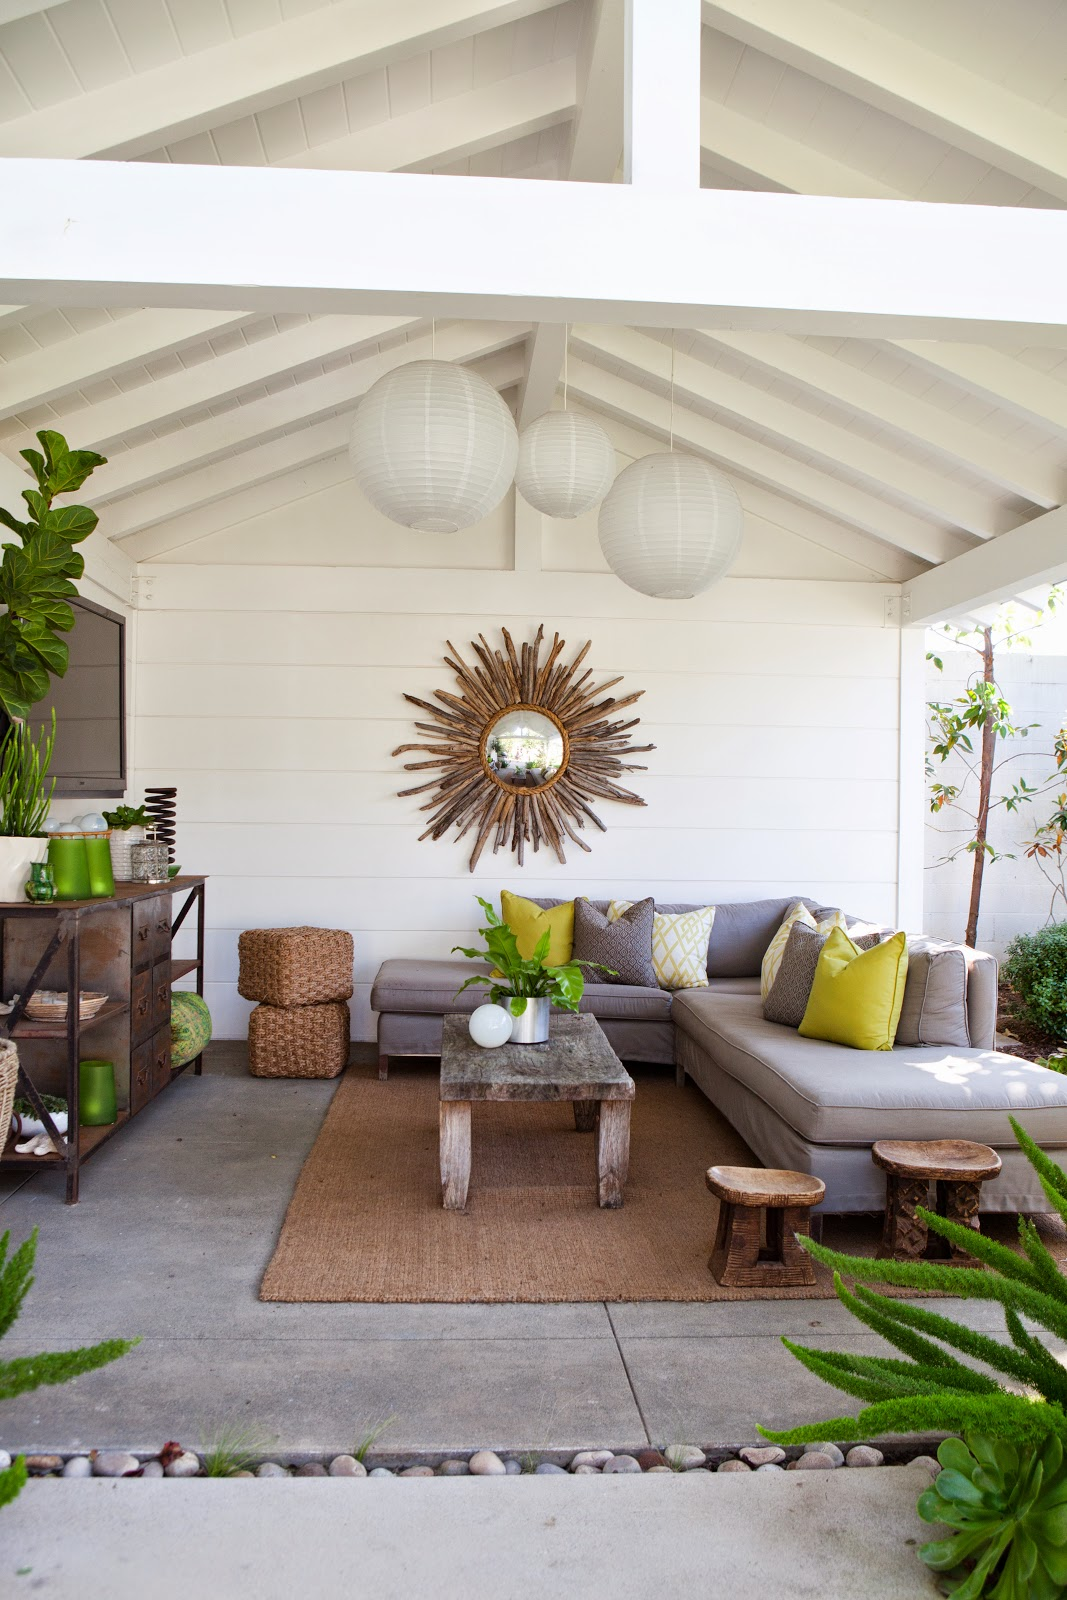 ciao! newport beach: molly wood garden design